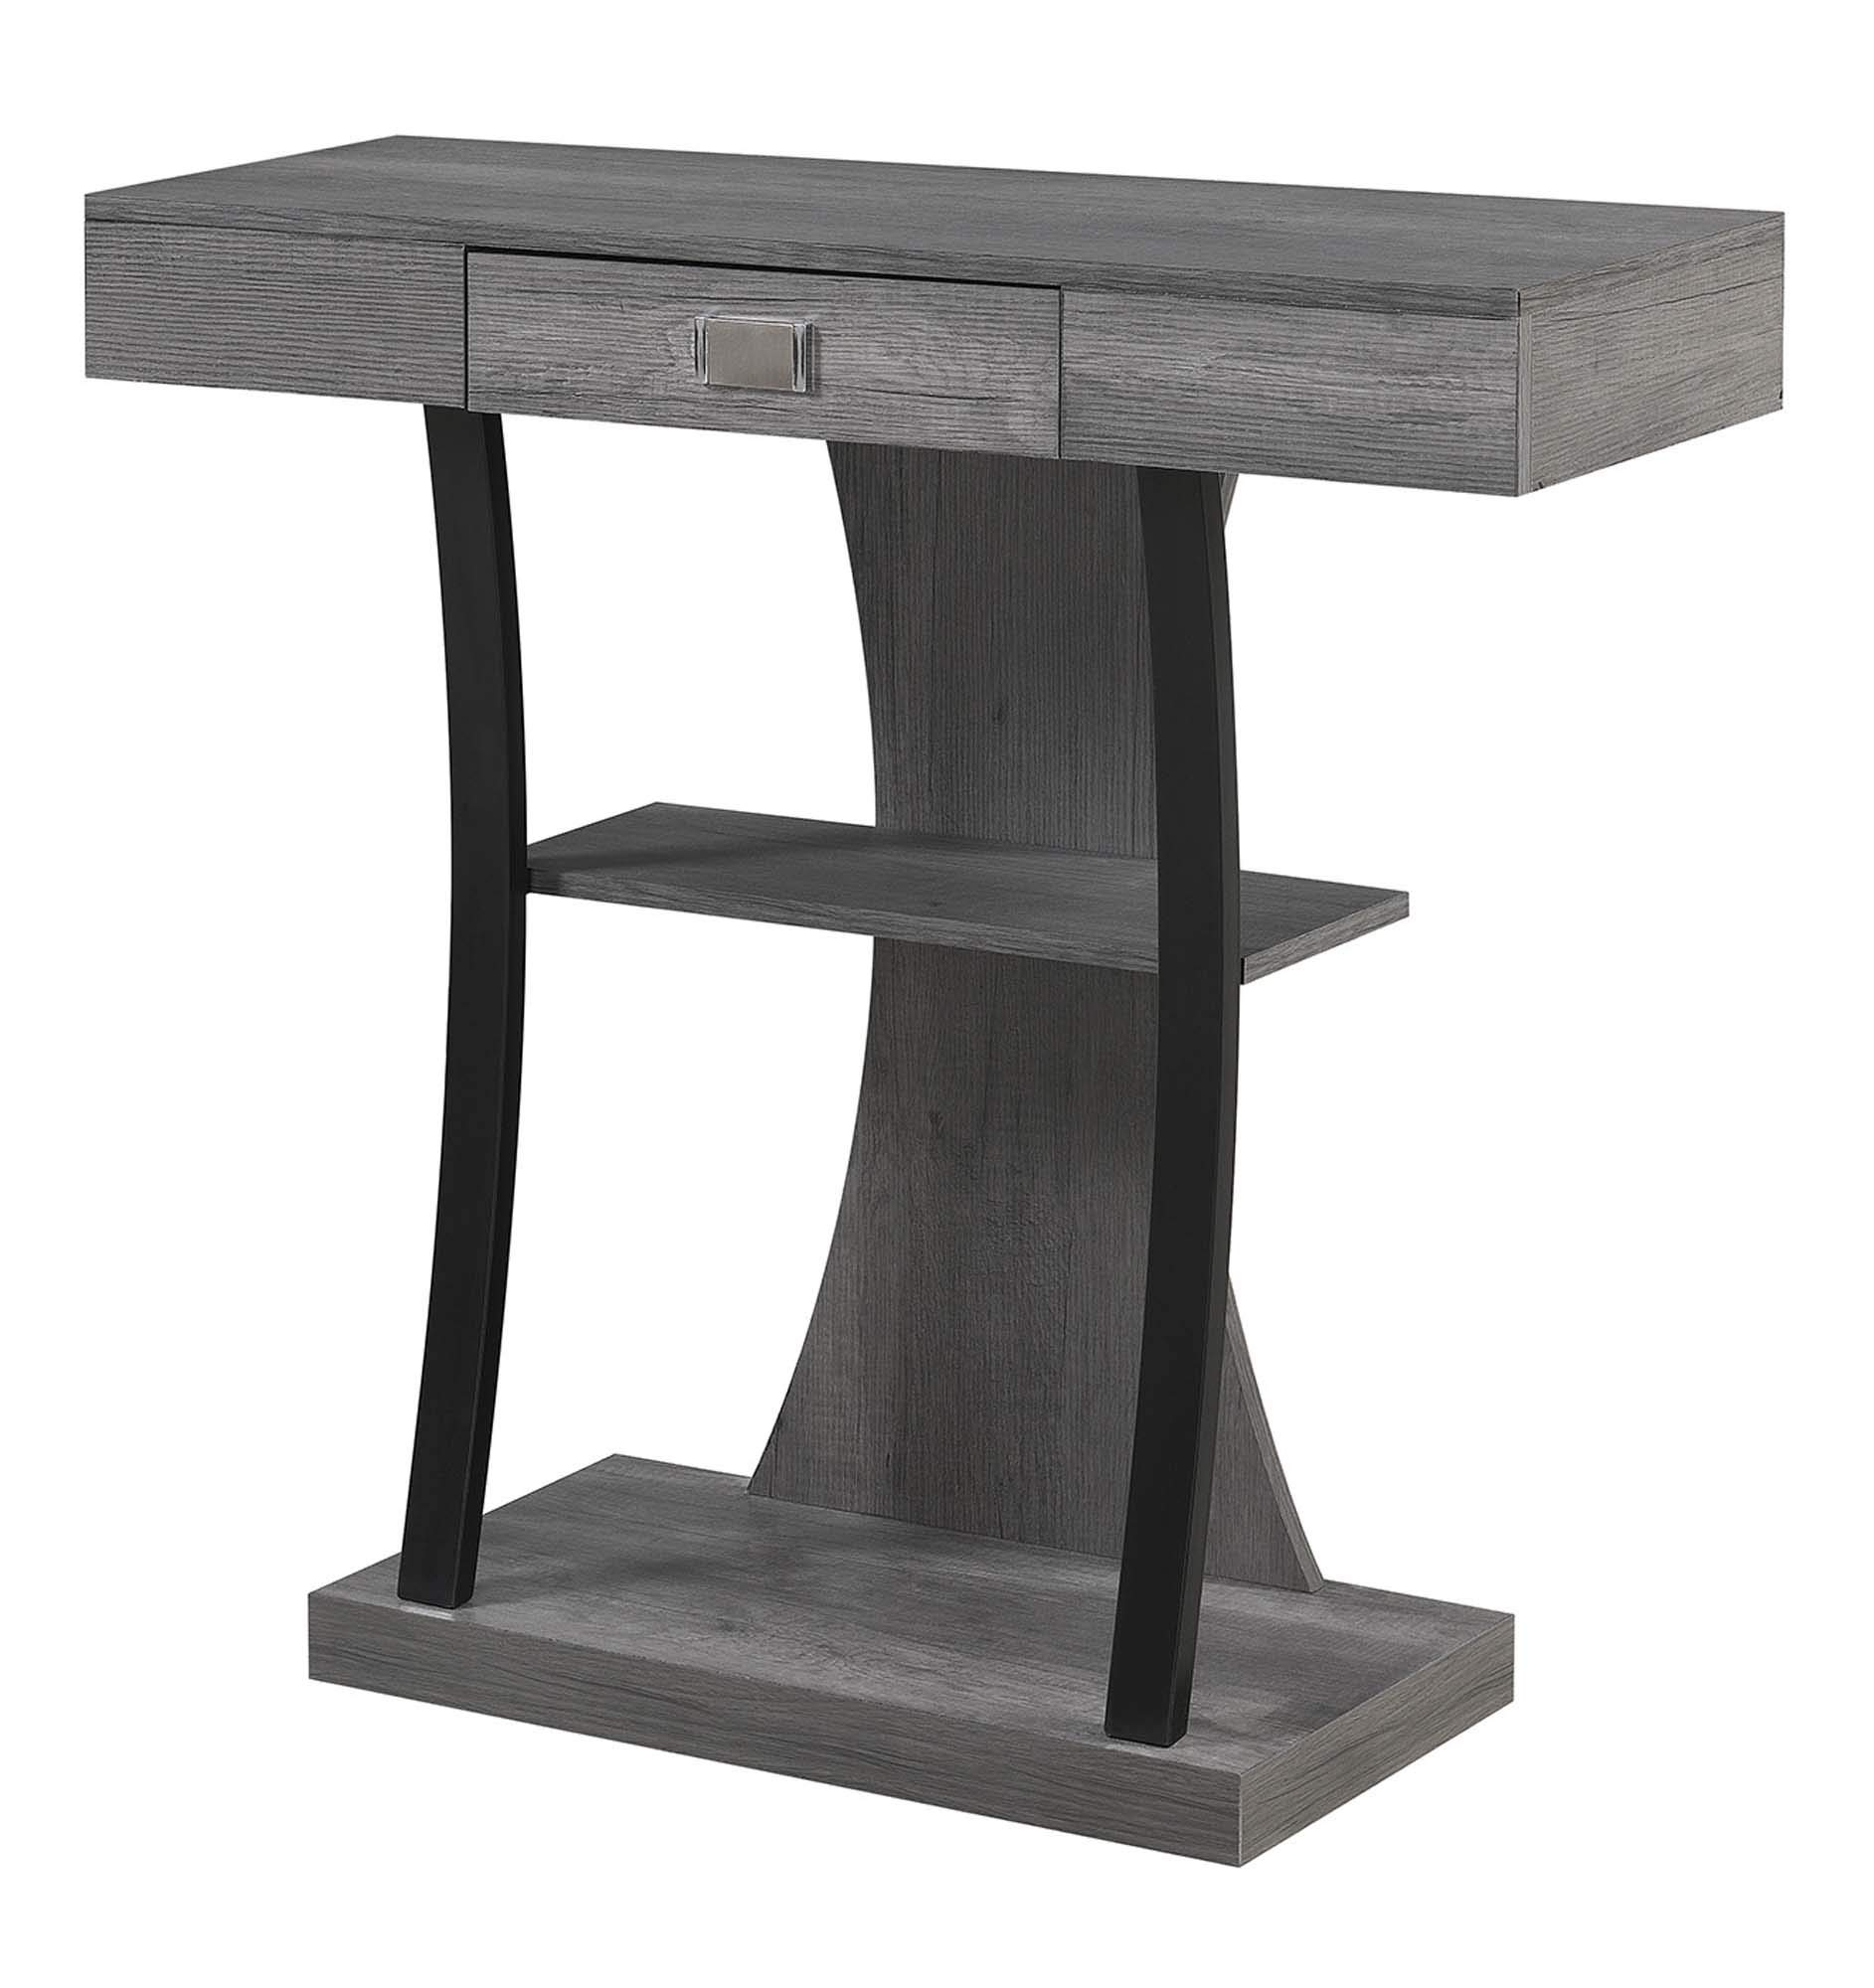 Convenience Concepts Newport Harri Console Table, Charcoal Gray by Convenience Concepts